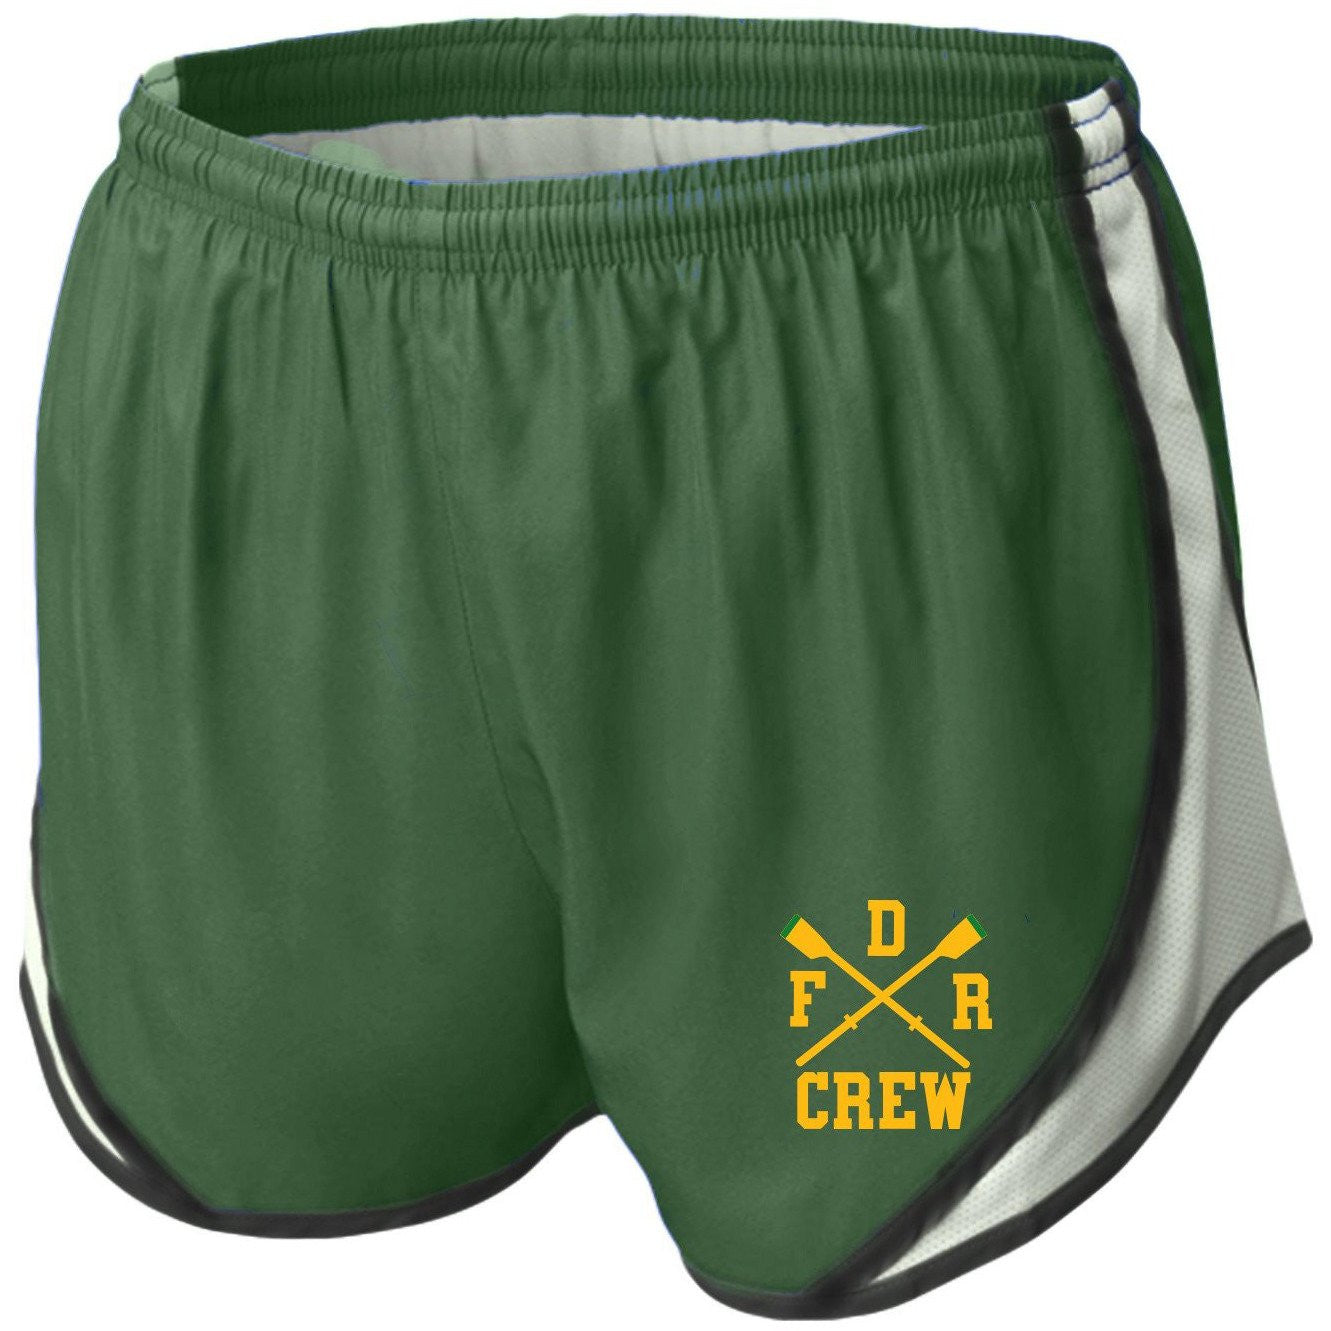 FDR Crew Ladies Running Shorts